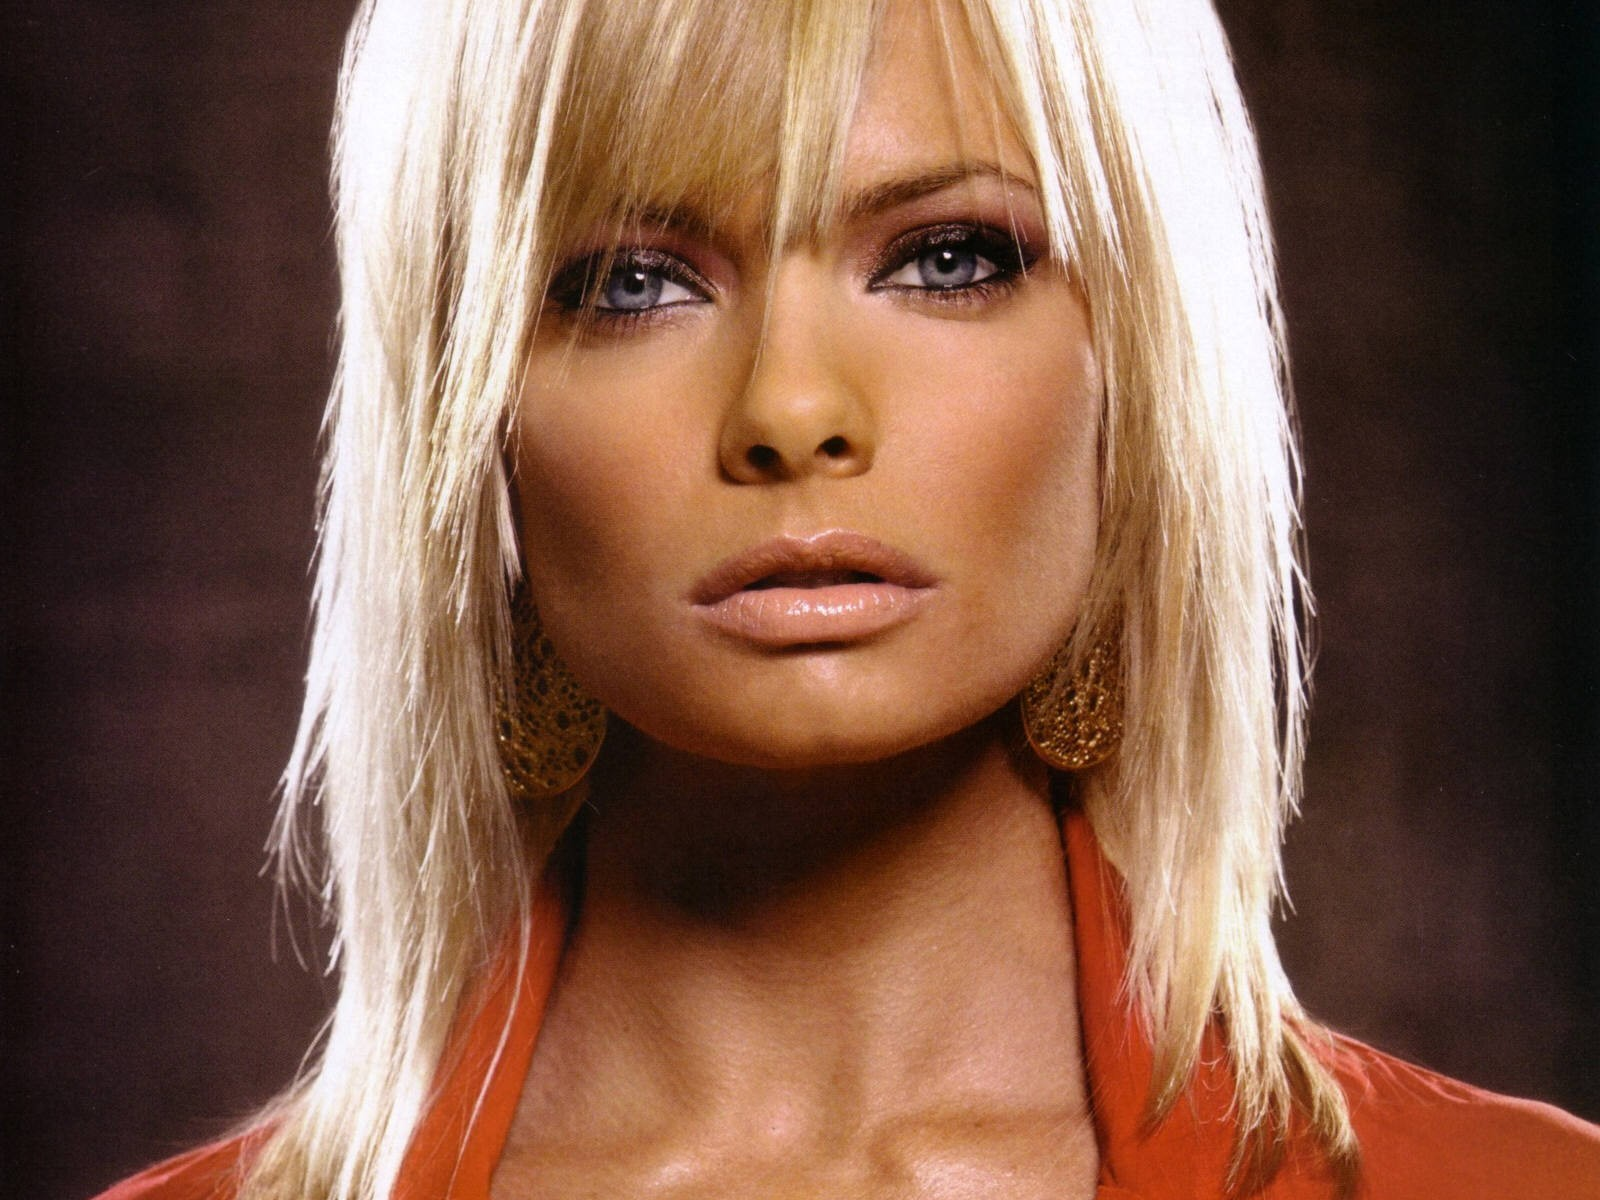 1600x1200 - Jaime Pressly Wallpapers 39